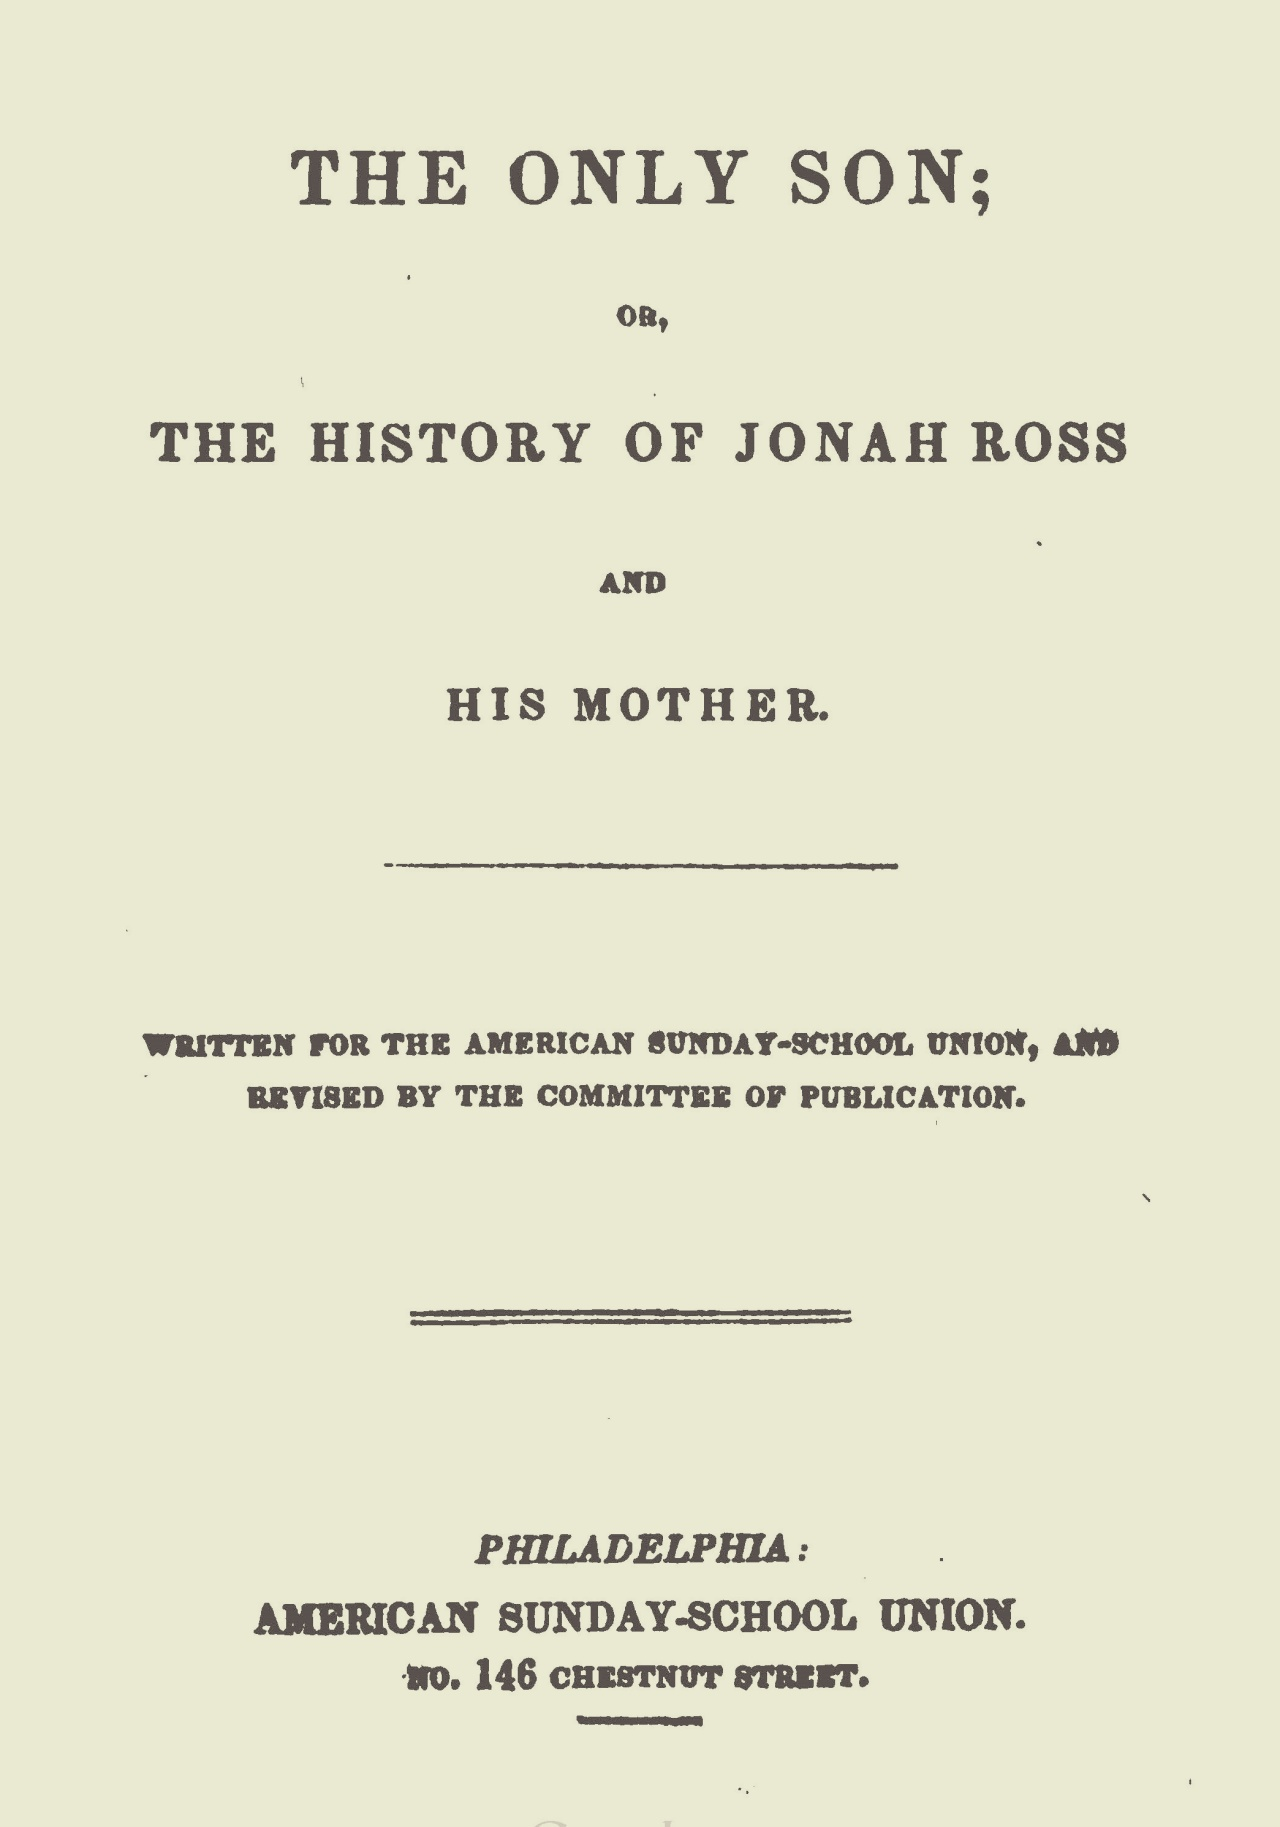 Alexander, James Waddel, The Only Son Title Page.jpg